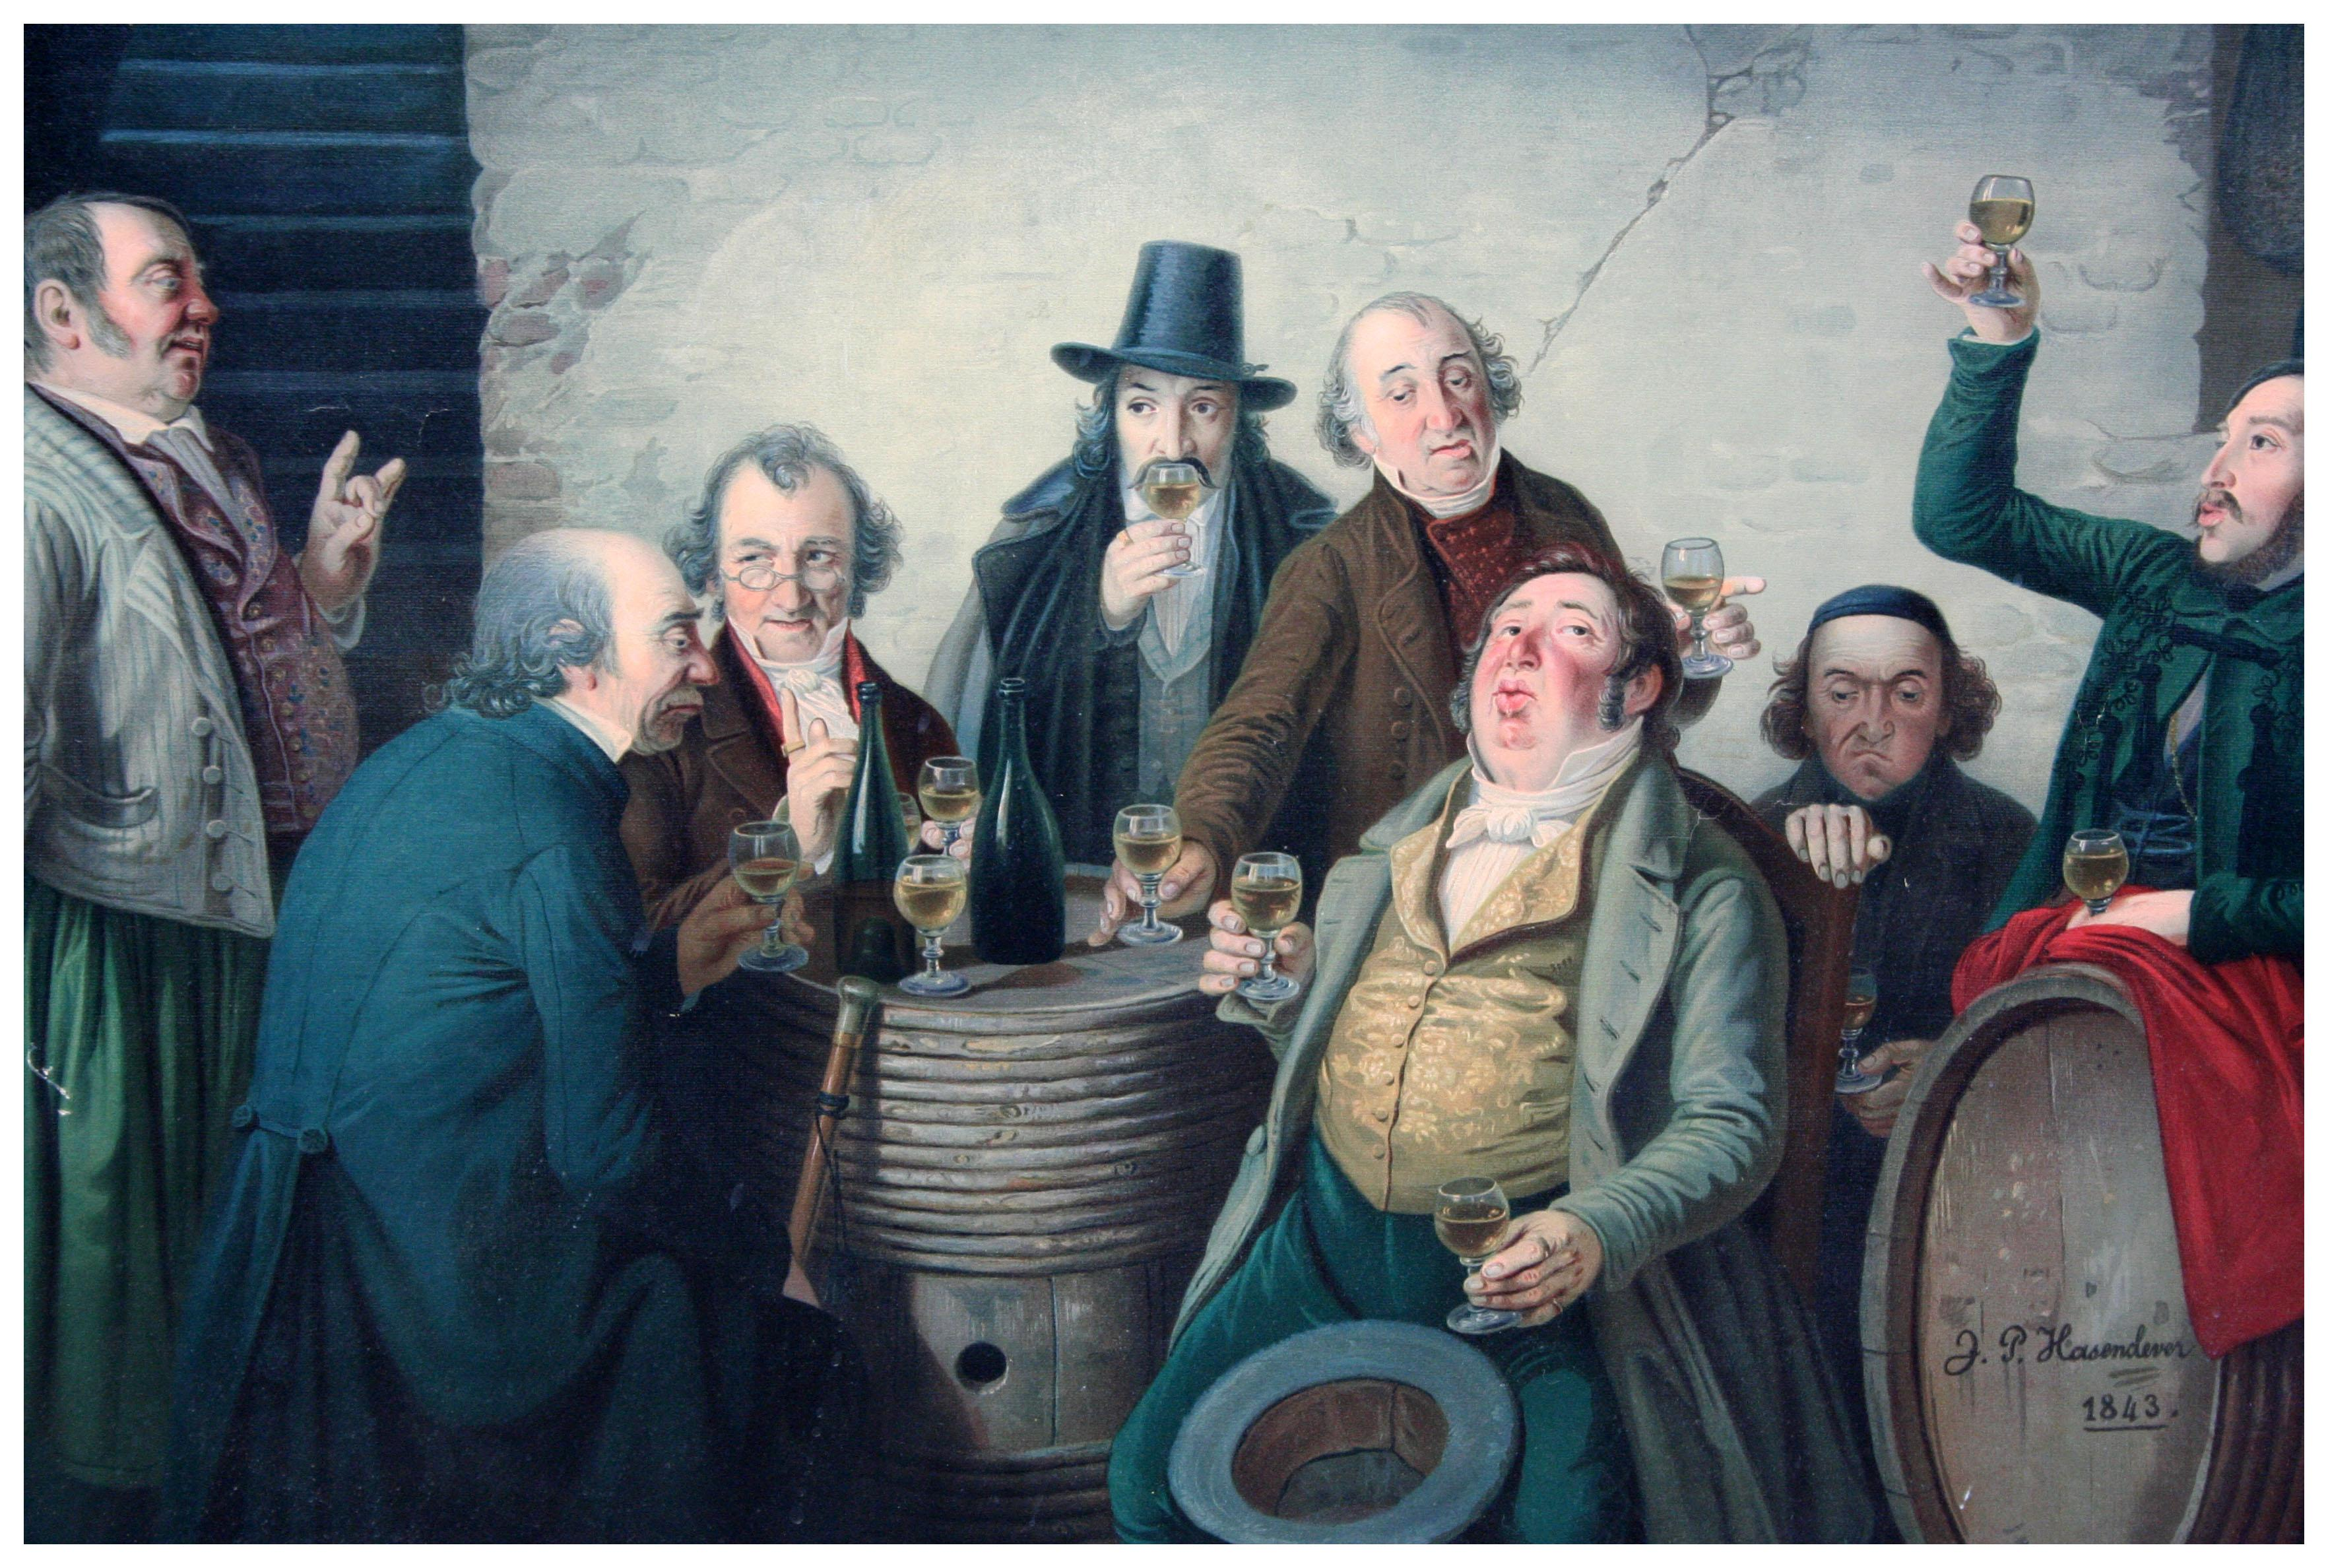 The Wine Tasters - Late 19th Century Lithograph